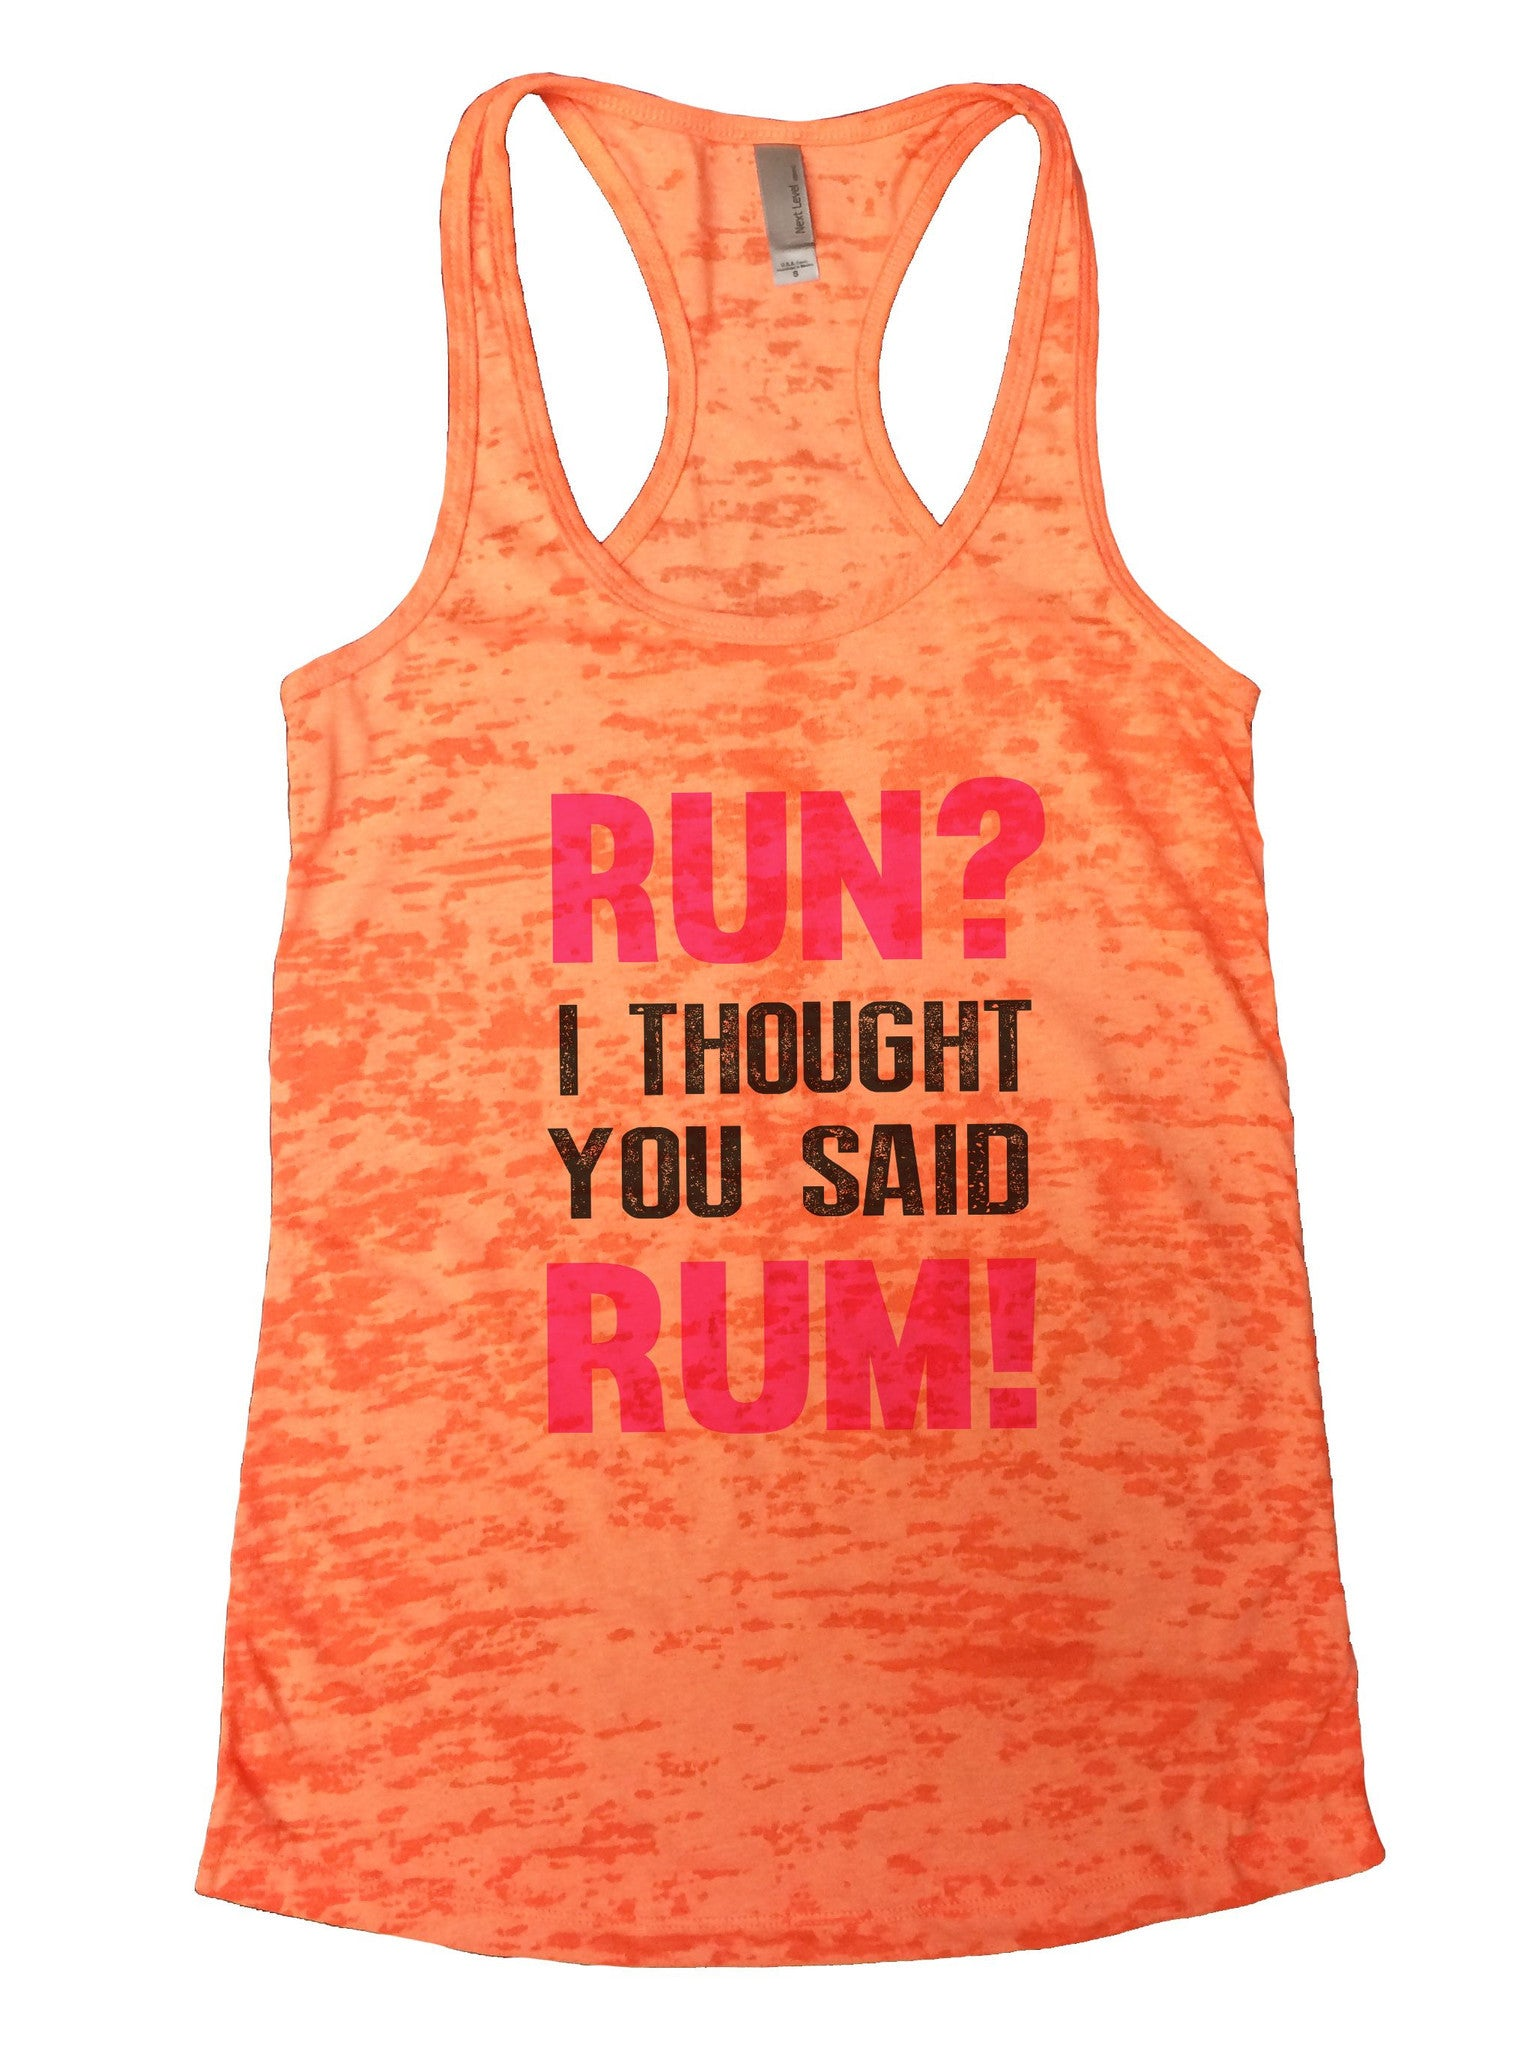 Run? I Thought You Said Rum! Burnout Tank Top By BurnoutTankTops.com - 958 - Funny Shirts Tank Tops Burnouts and Triblends  - 3